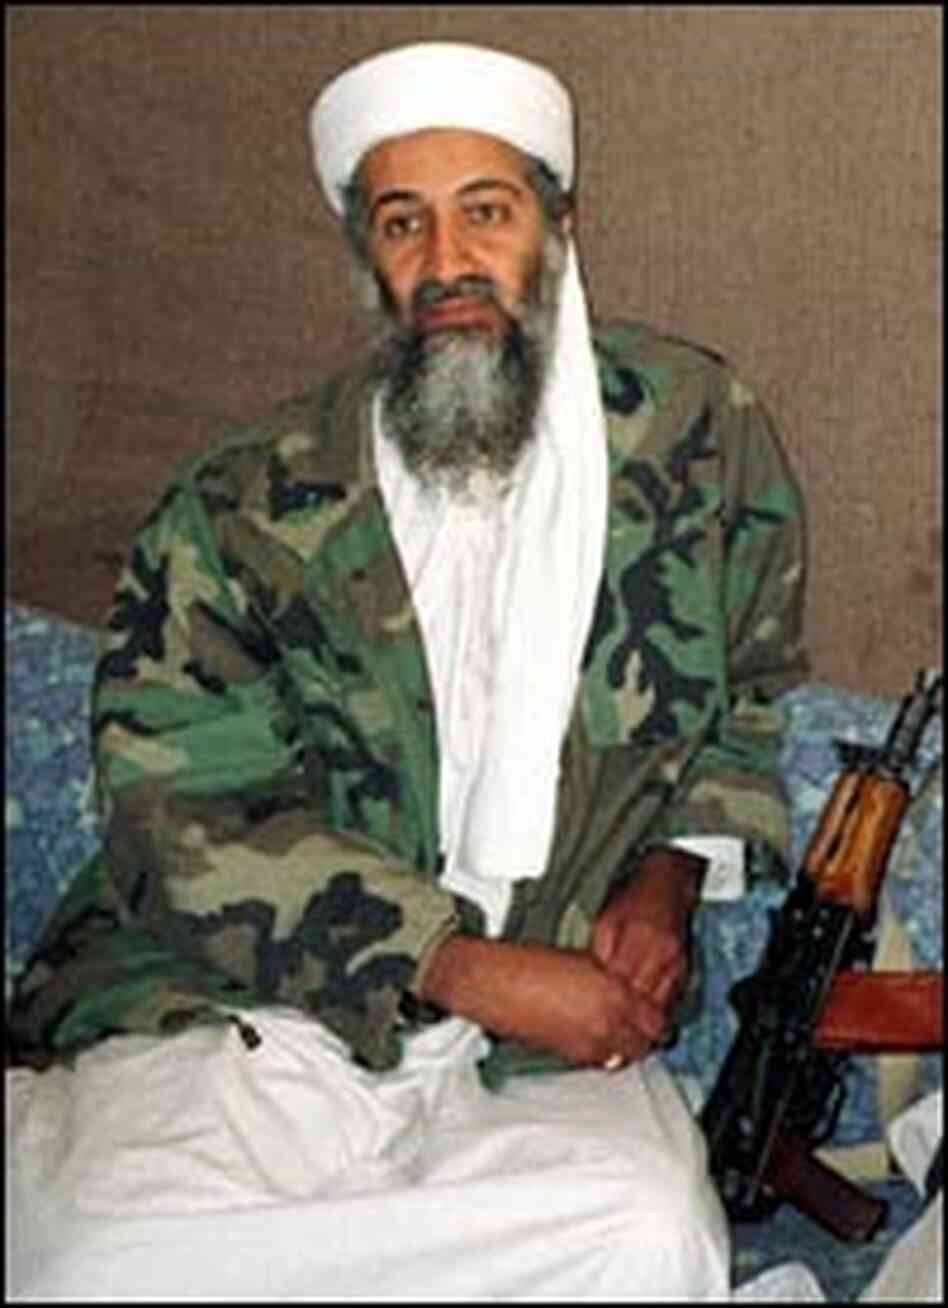 Osama bin Laden in a Nov. 10, 2001, photo.